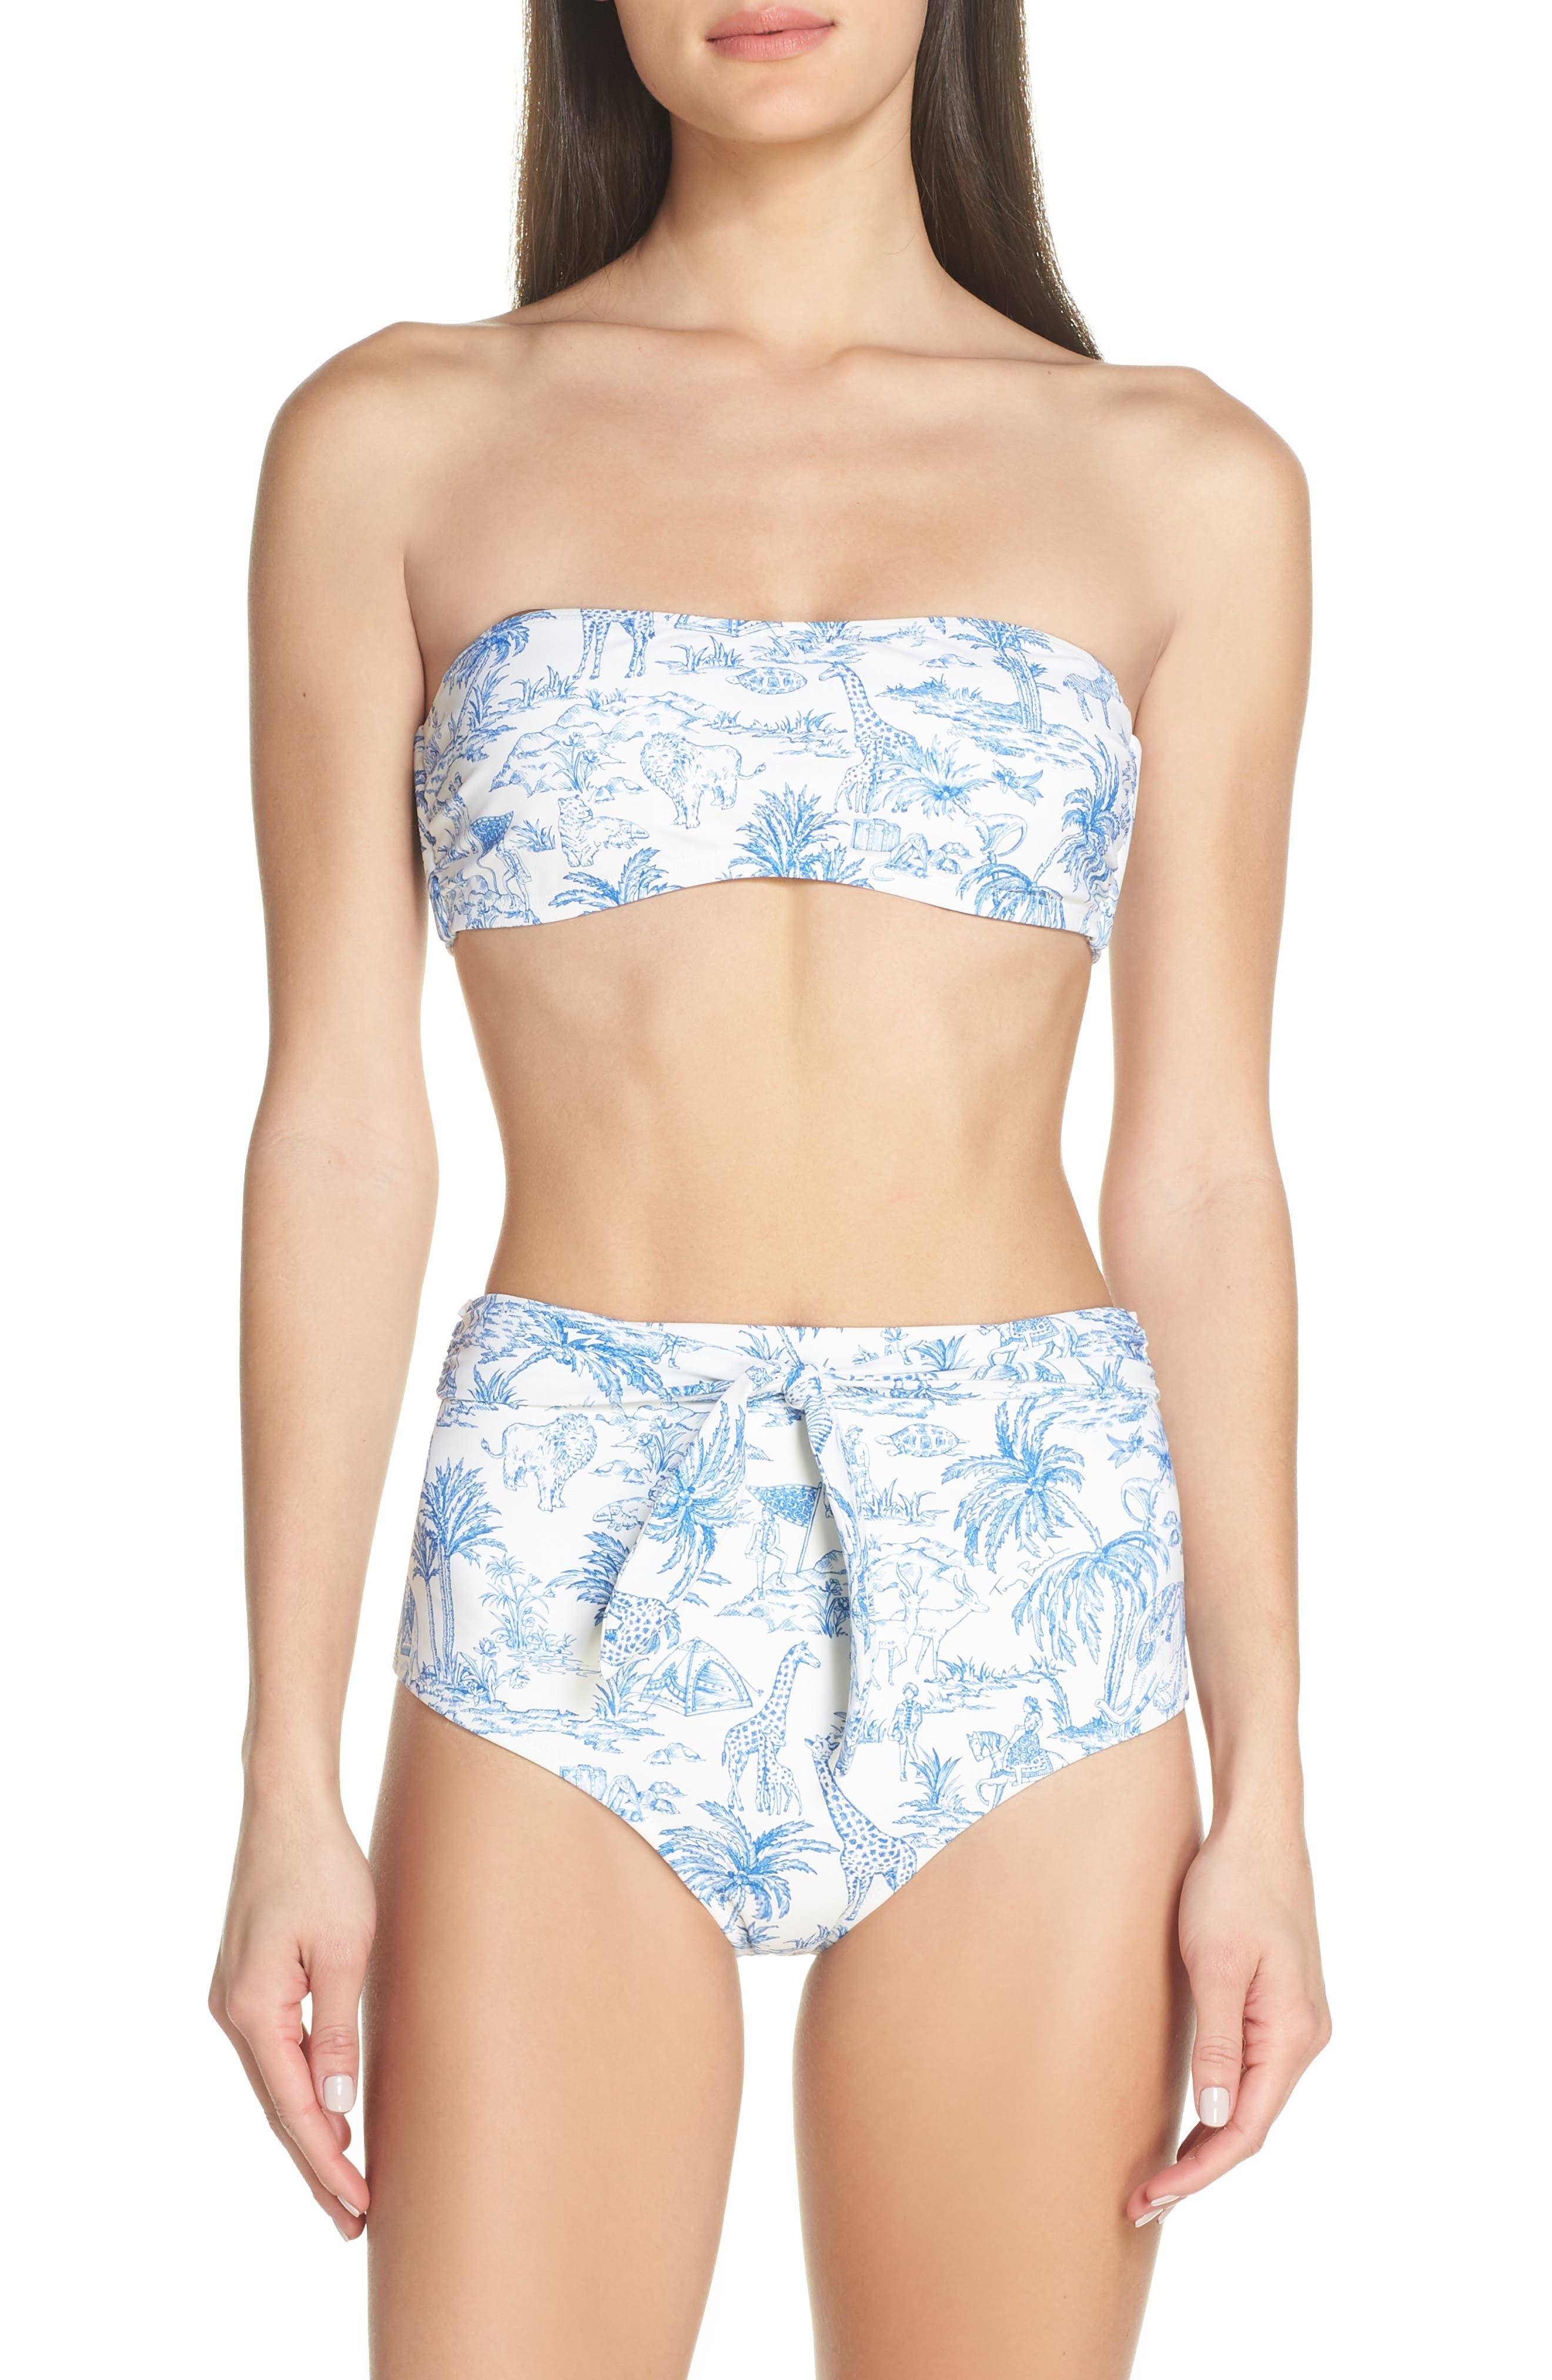 TORY BURCH,                             Sash Tie High Waist Bikini Bottoms,                             Alternate thumbnail 7, color,                             IVORY FAR AND AWAY